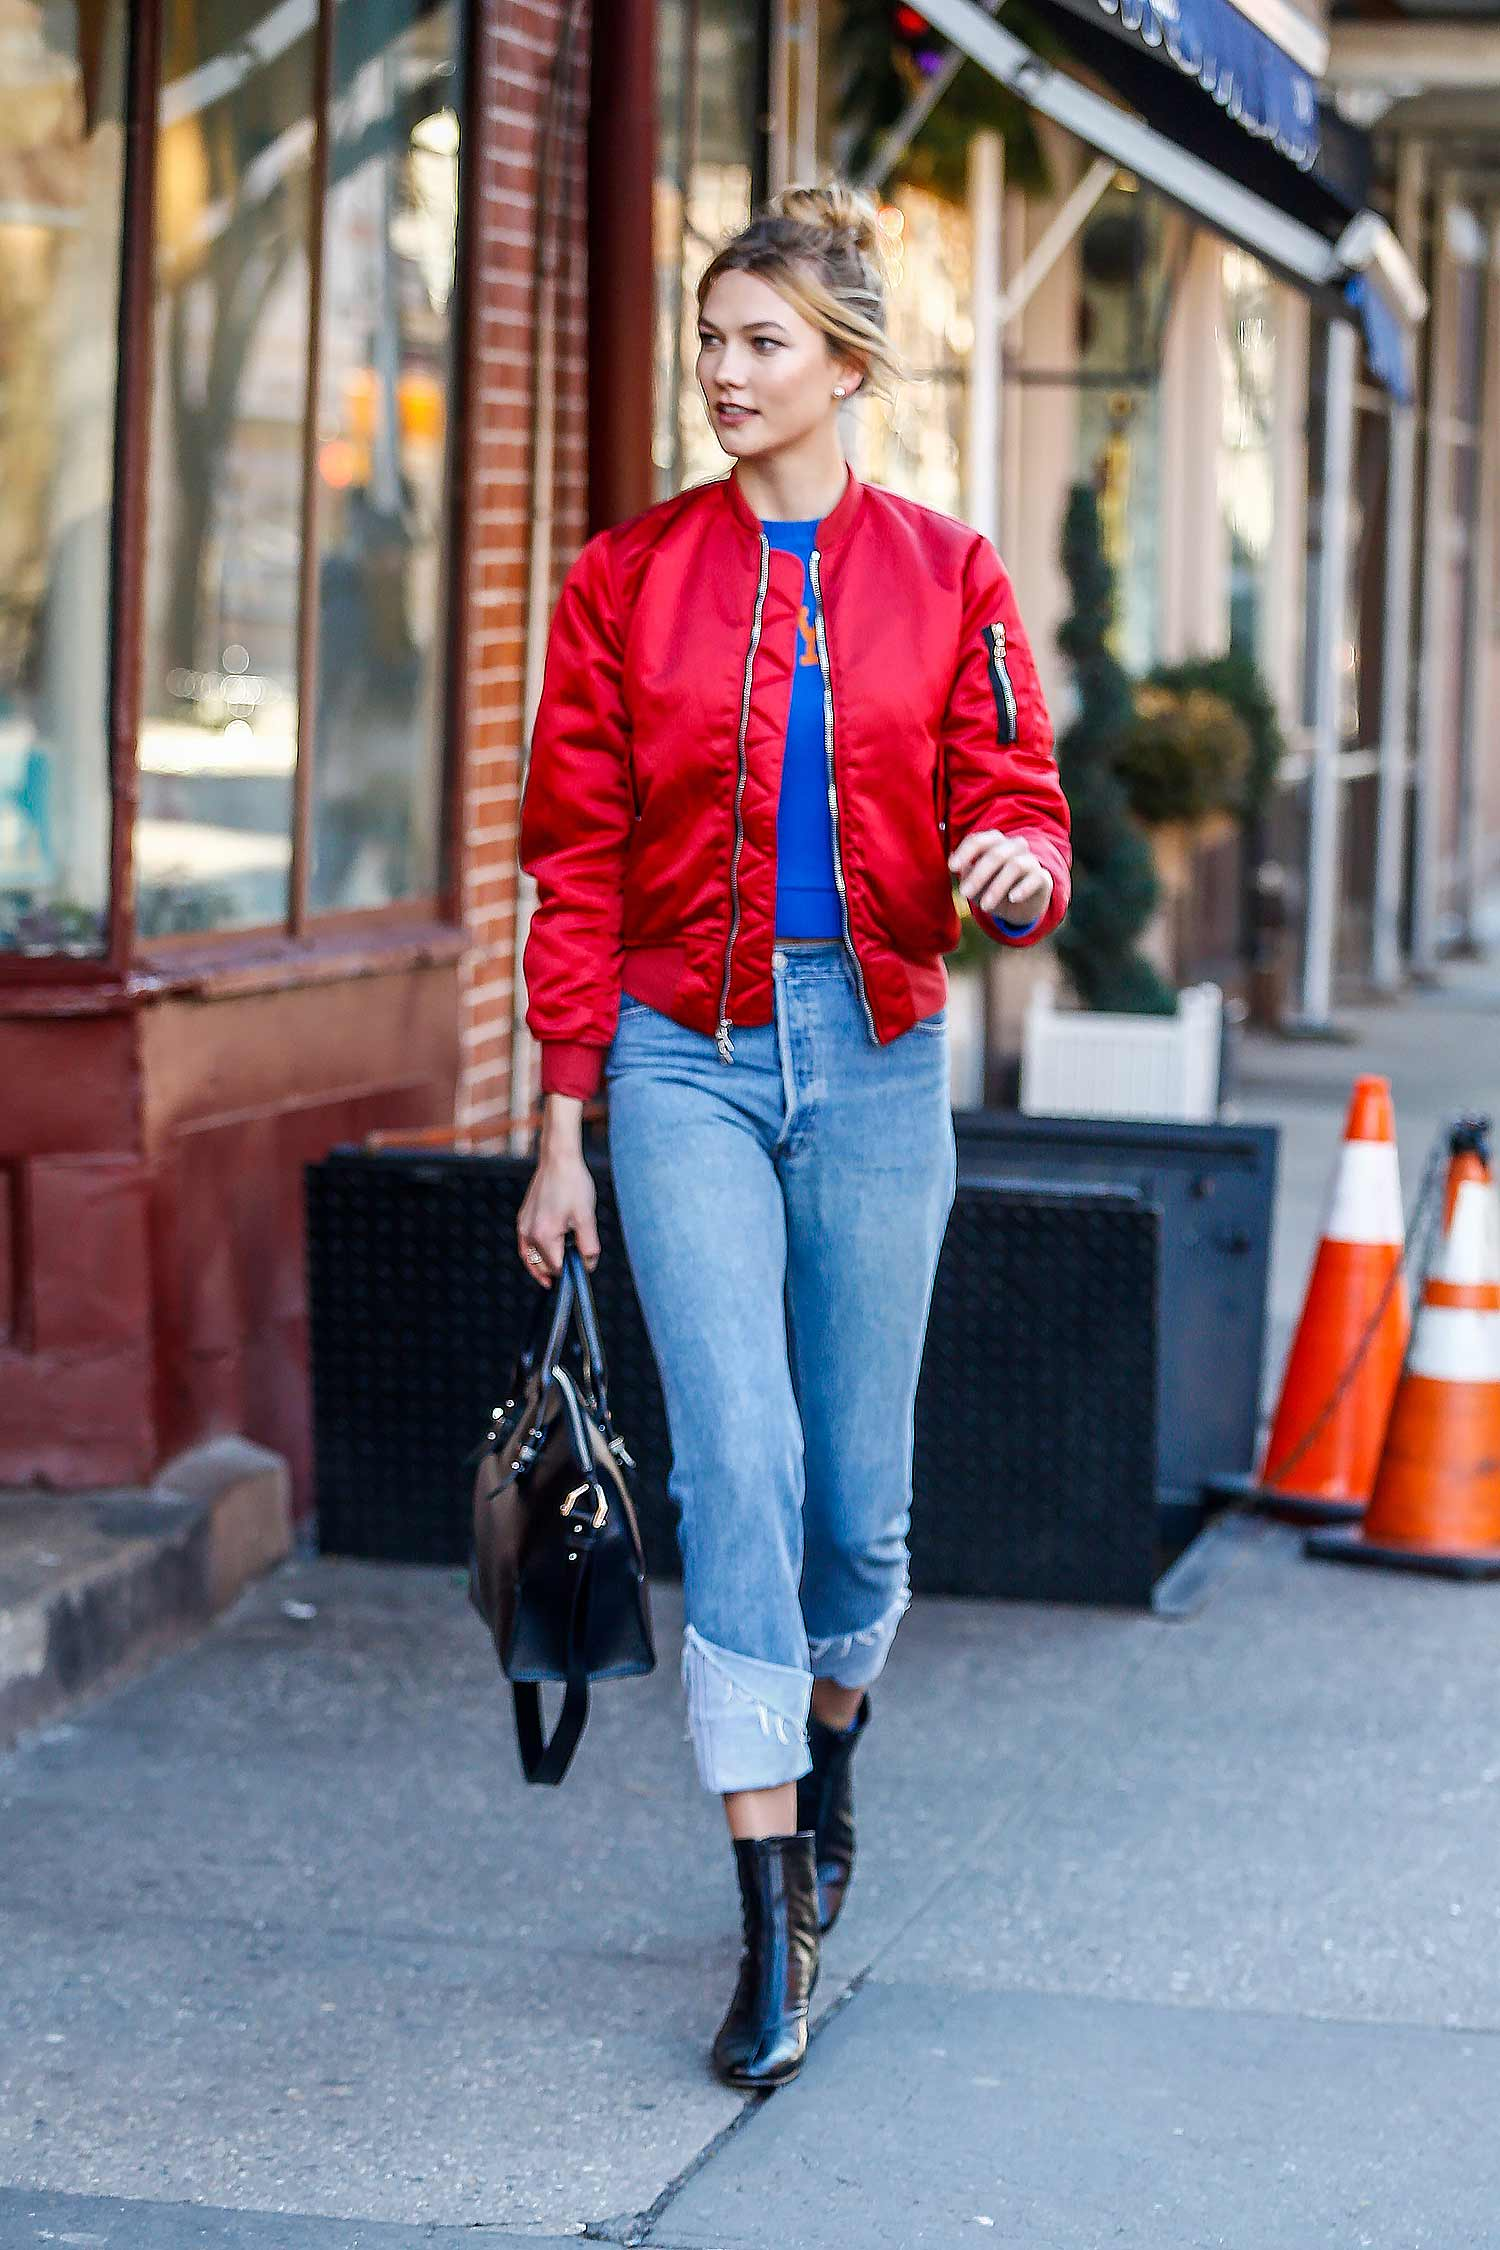 karlie-kloss-redone-levis-jeans-new